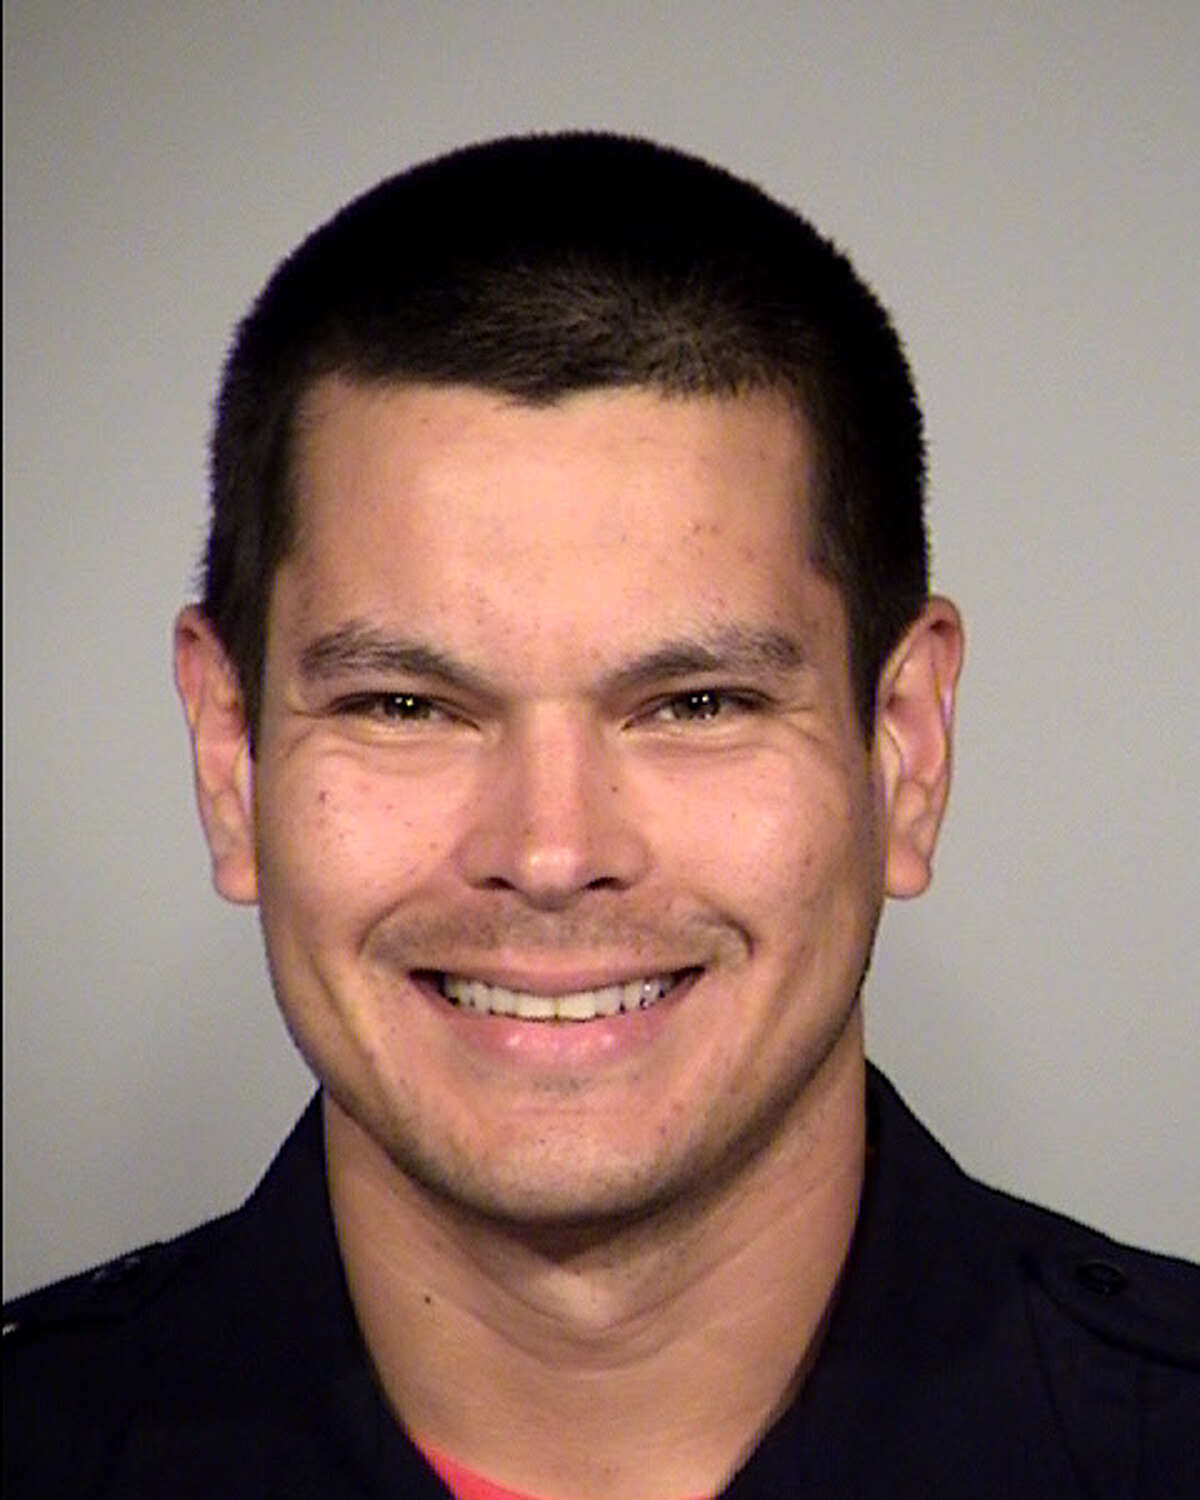 Officer Mattthew Luckhurst, a 5-year veteran of SAPD, was fired for allegedly attempting to feed a fecal sandwich to a homeless person.